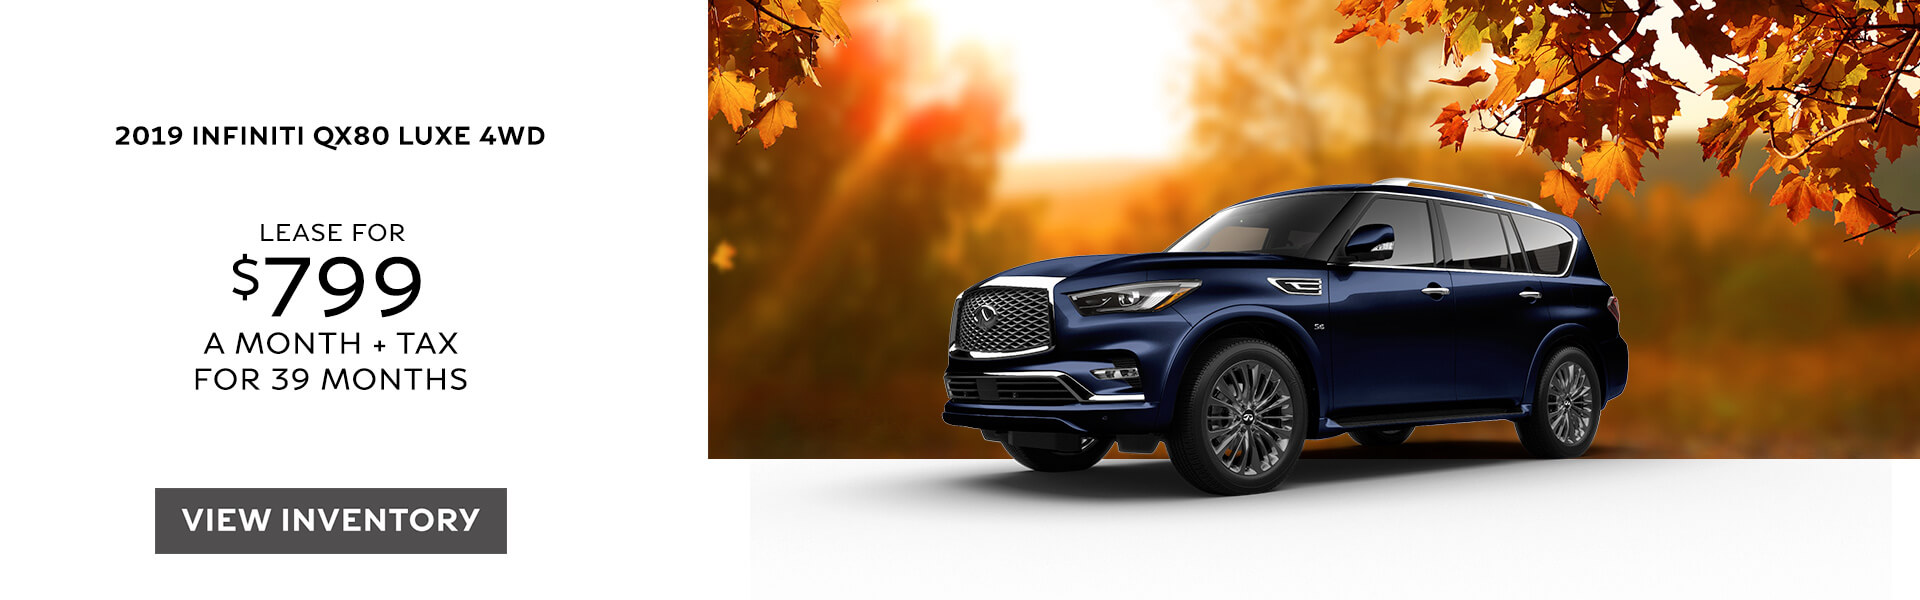 QX80 LUXE - Lease for $799